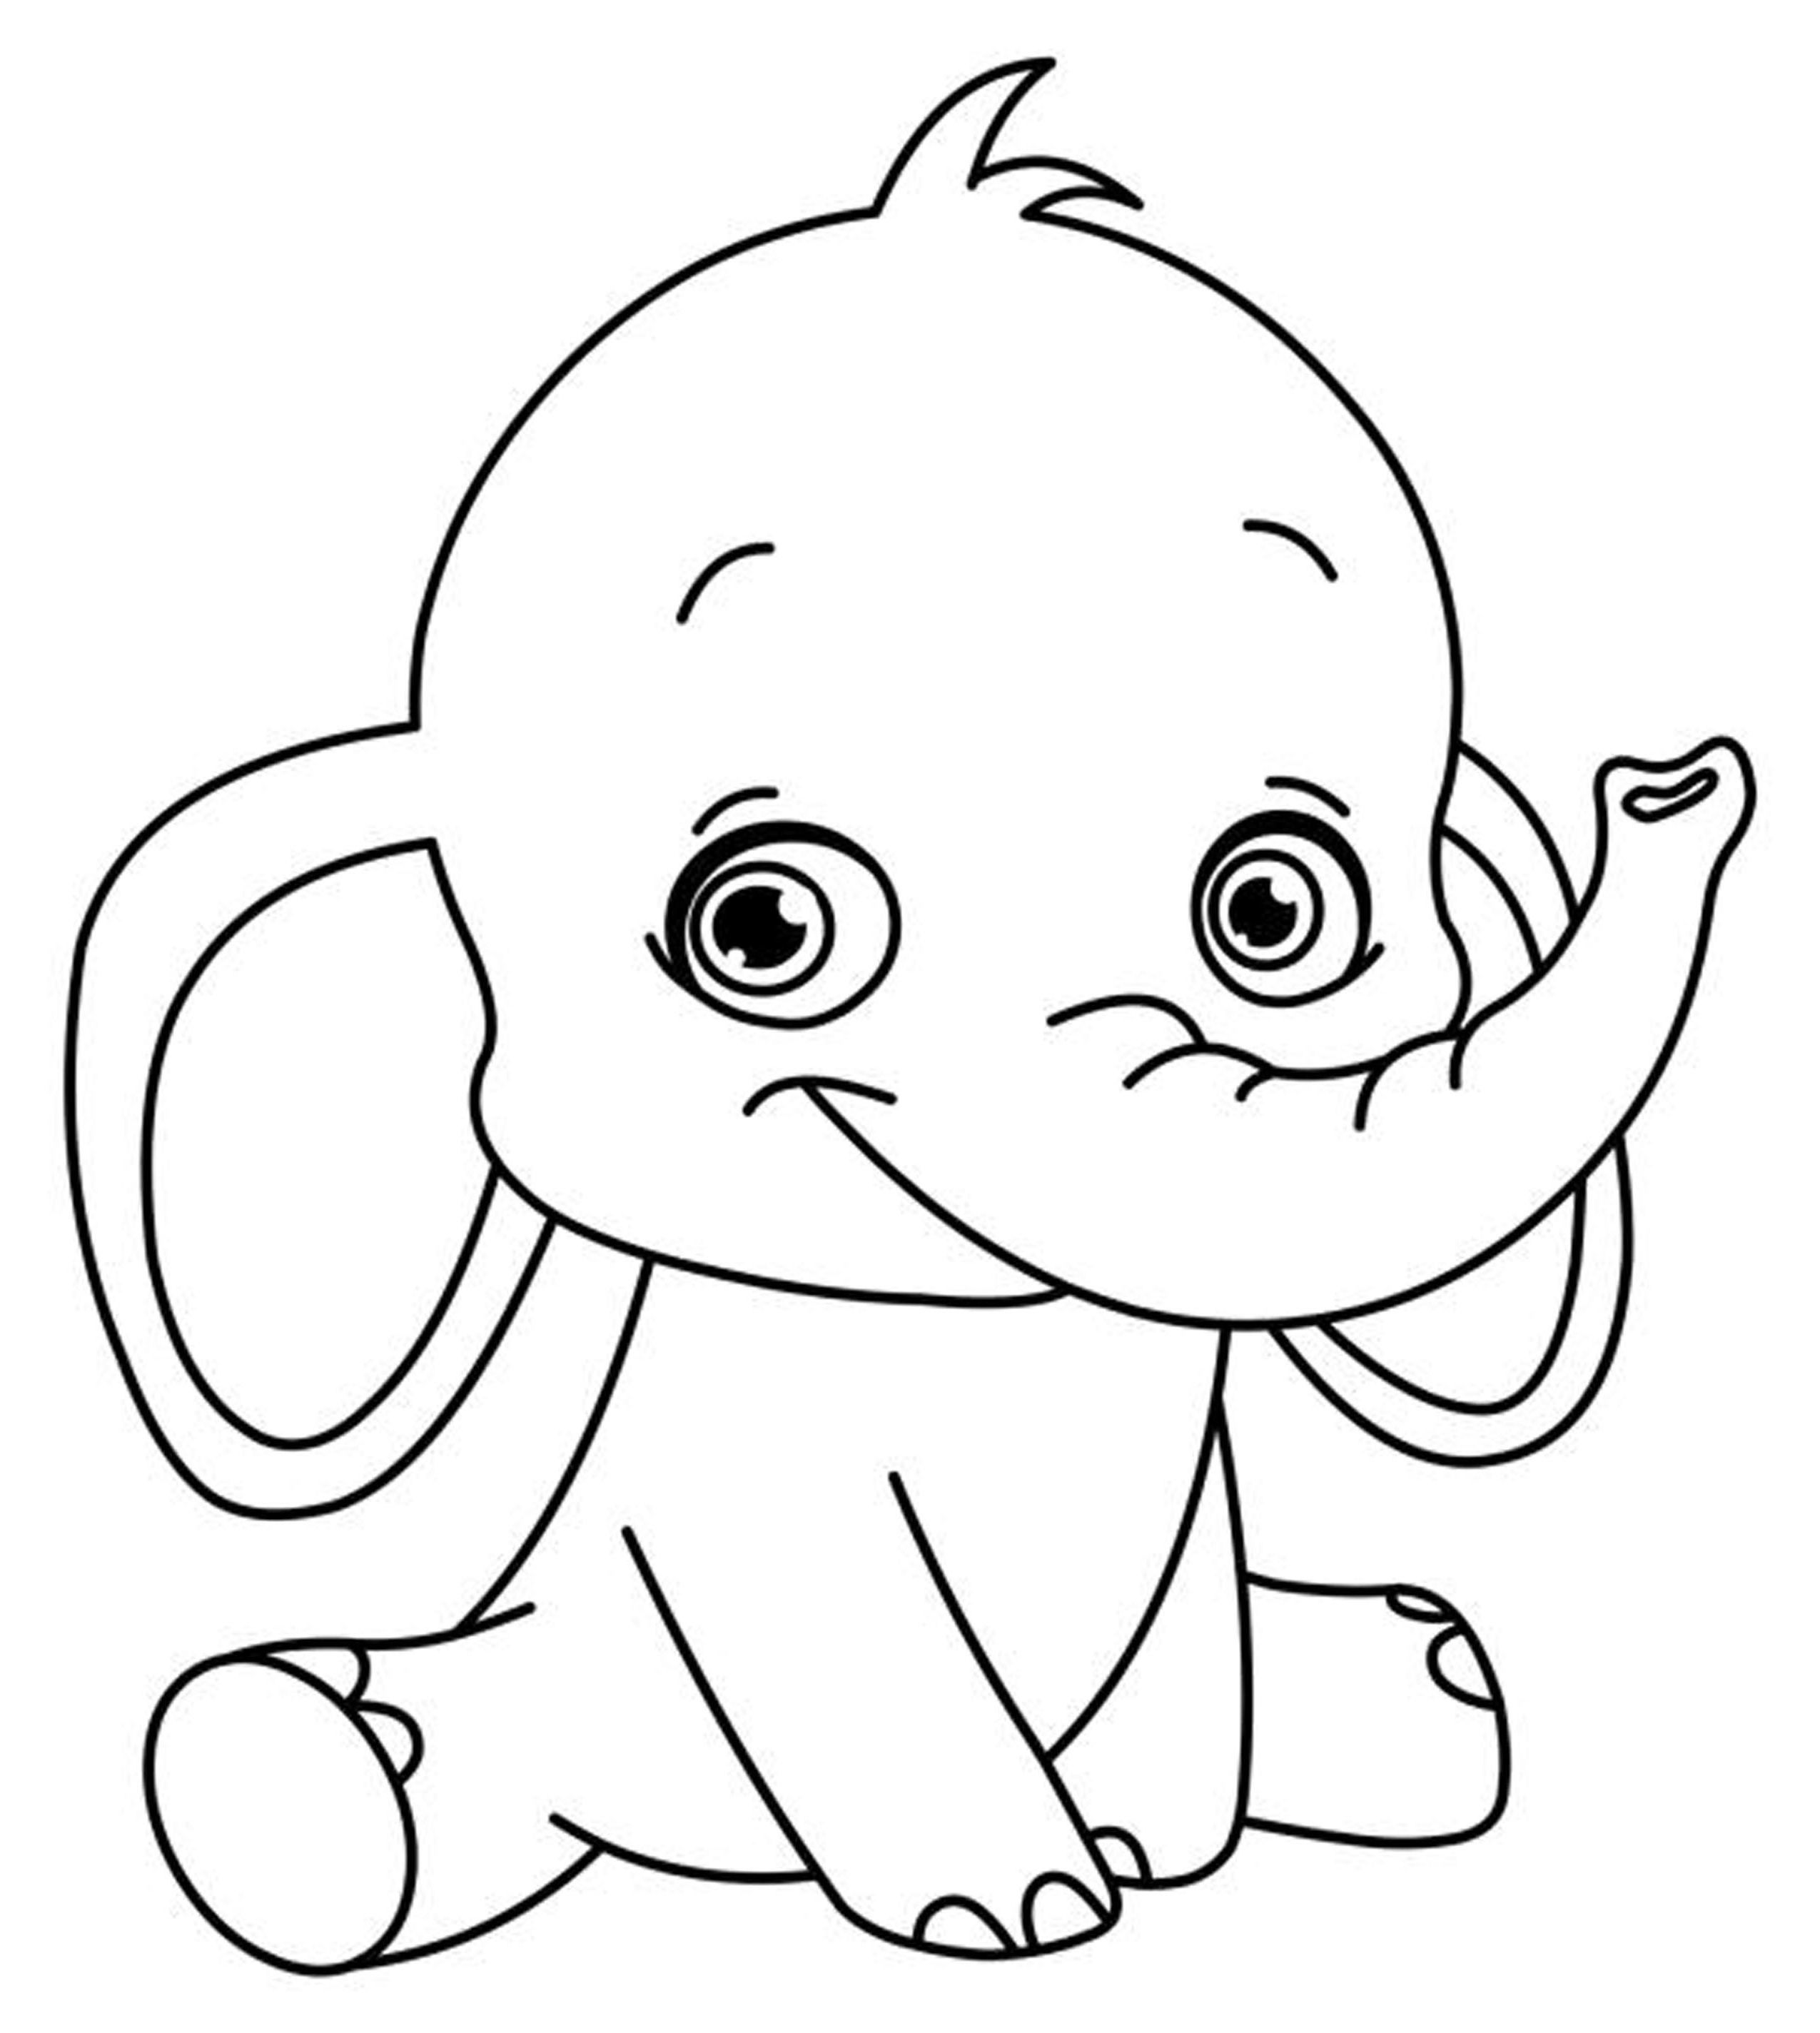 free fun disney coloring pages - photo#20